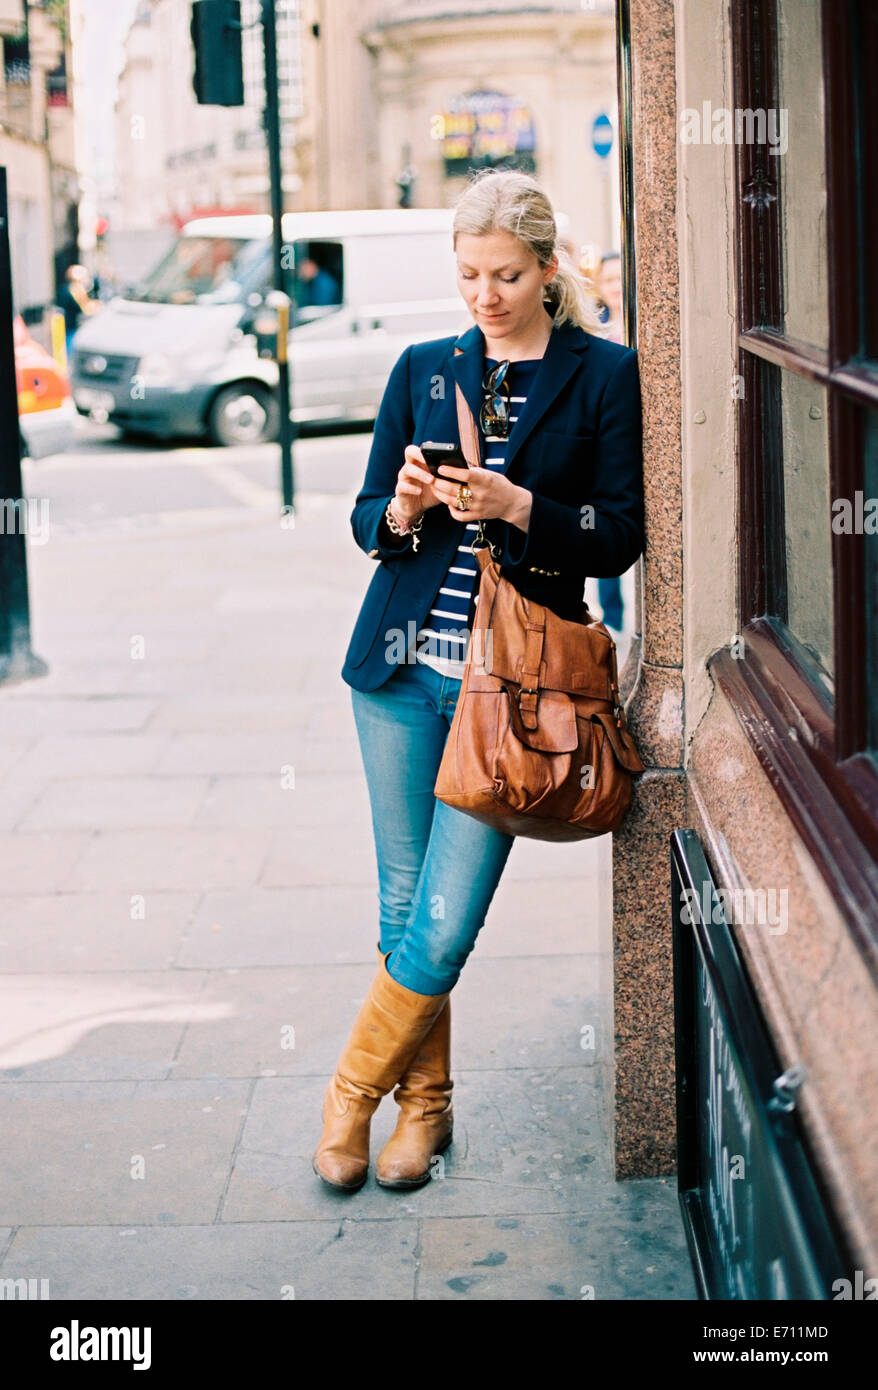 A woman checking her phone leaning against a wall on the street. - Stock Image